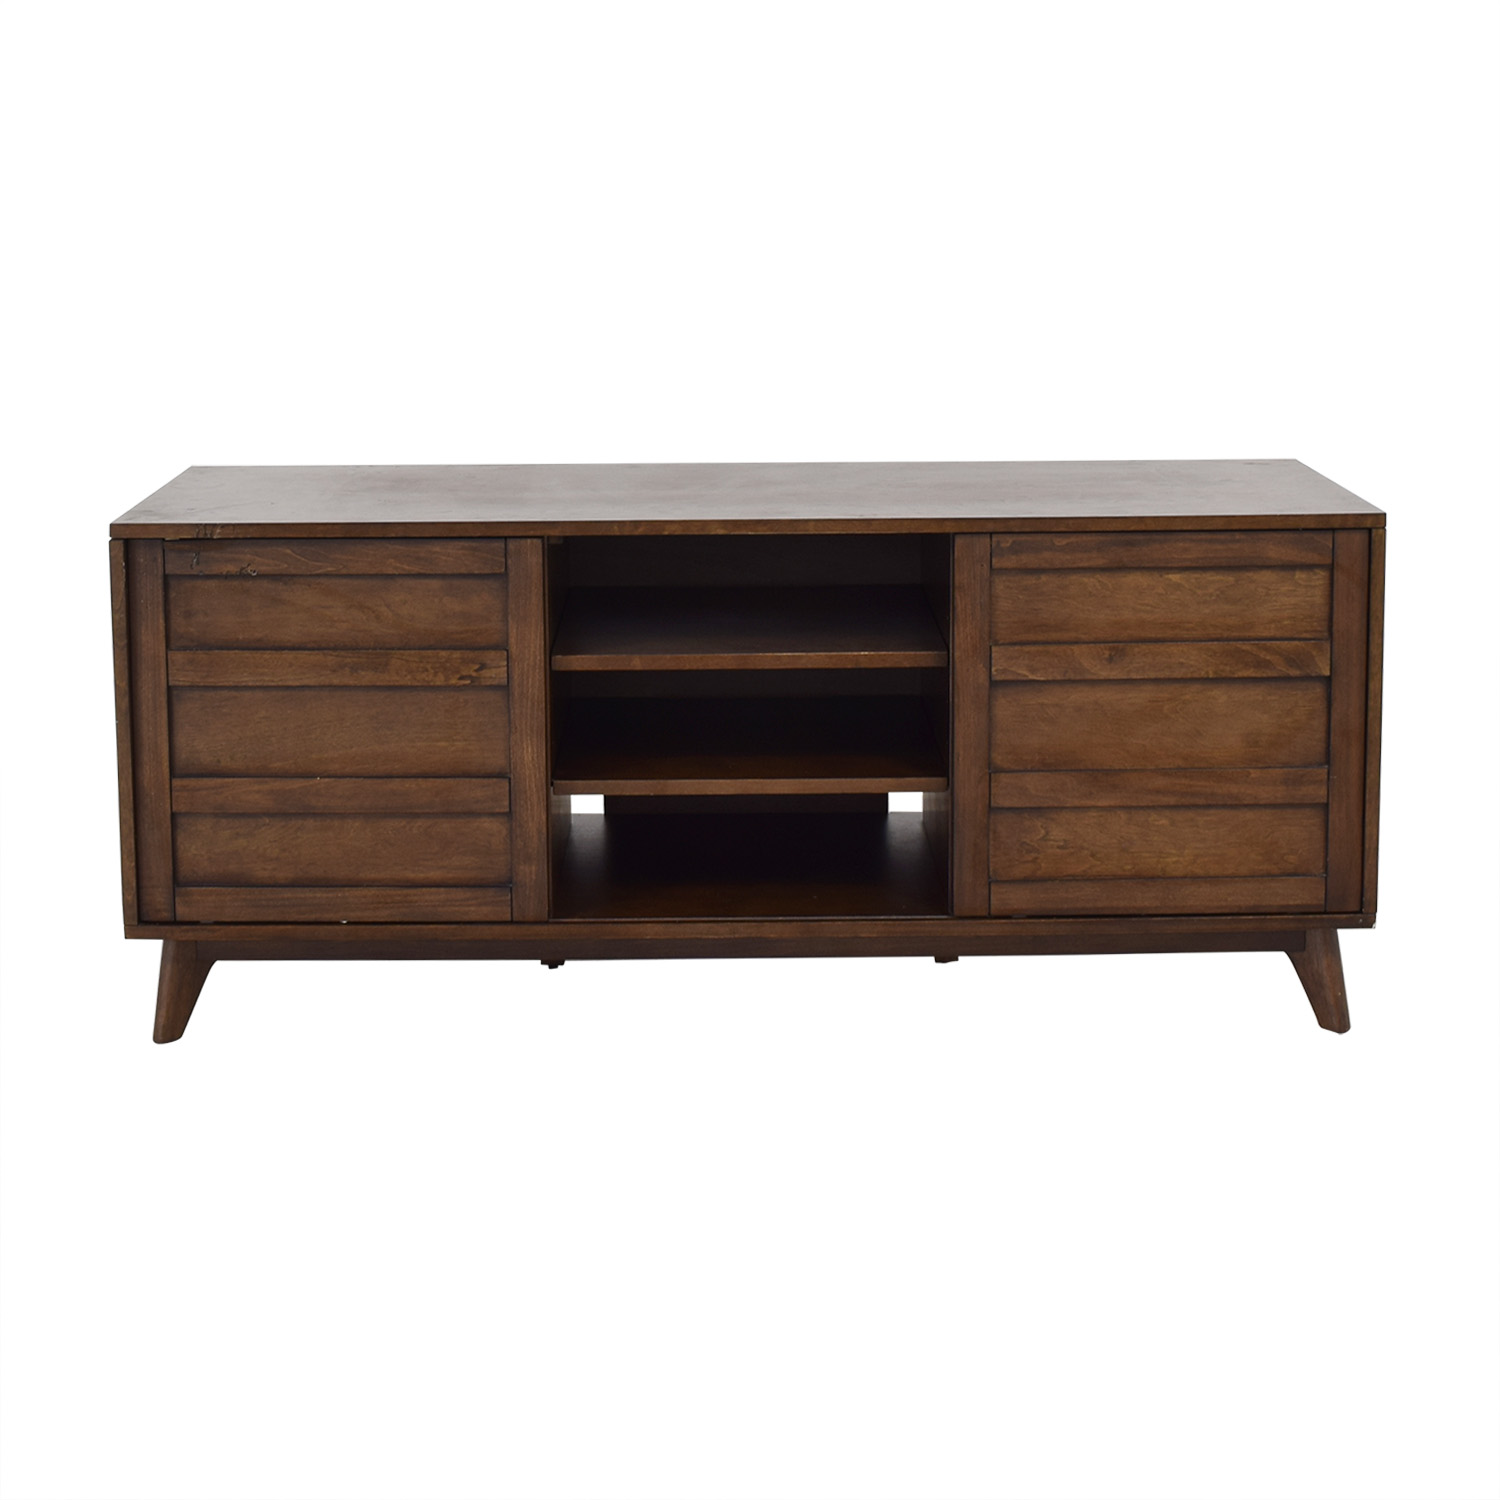 Crate & Barrel Crate & Barrel Media Console used